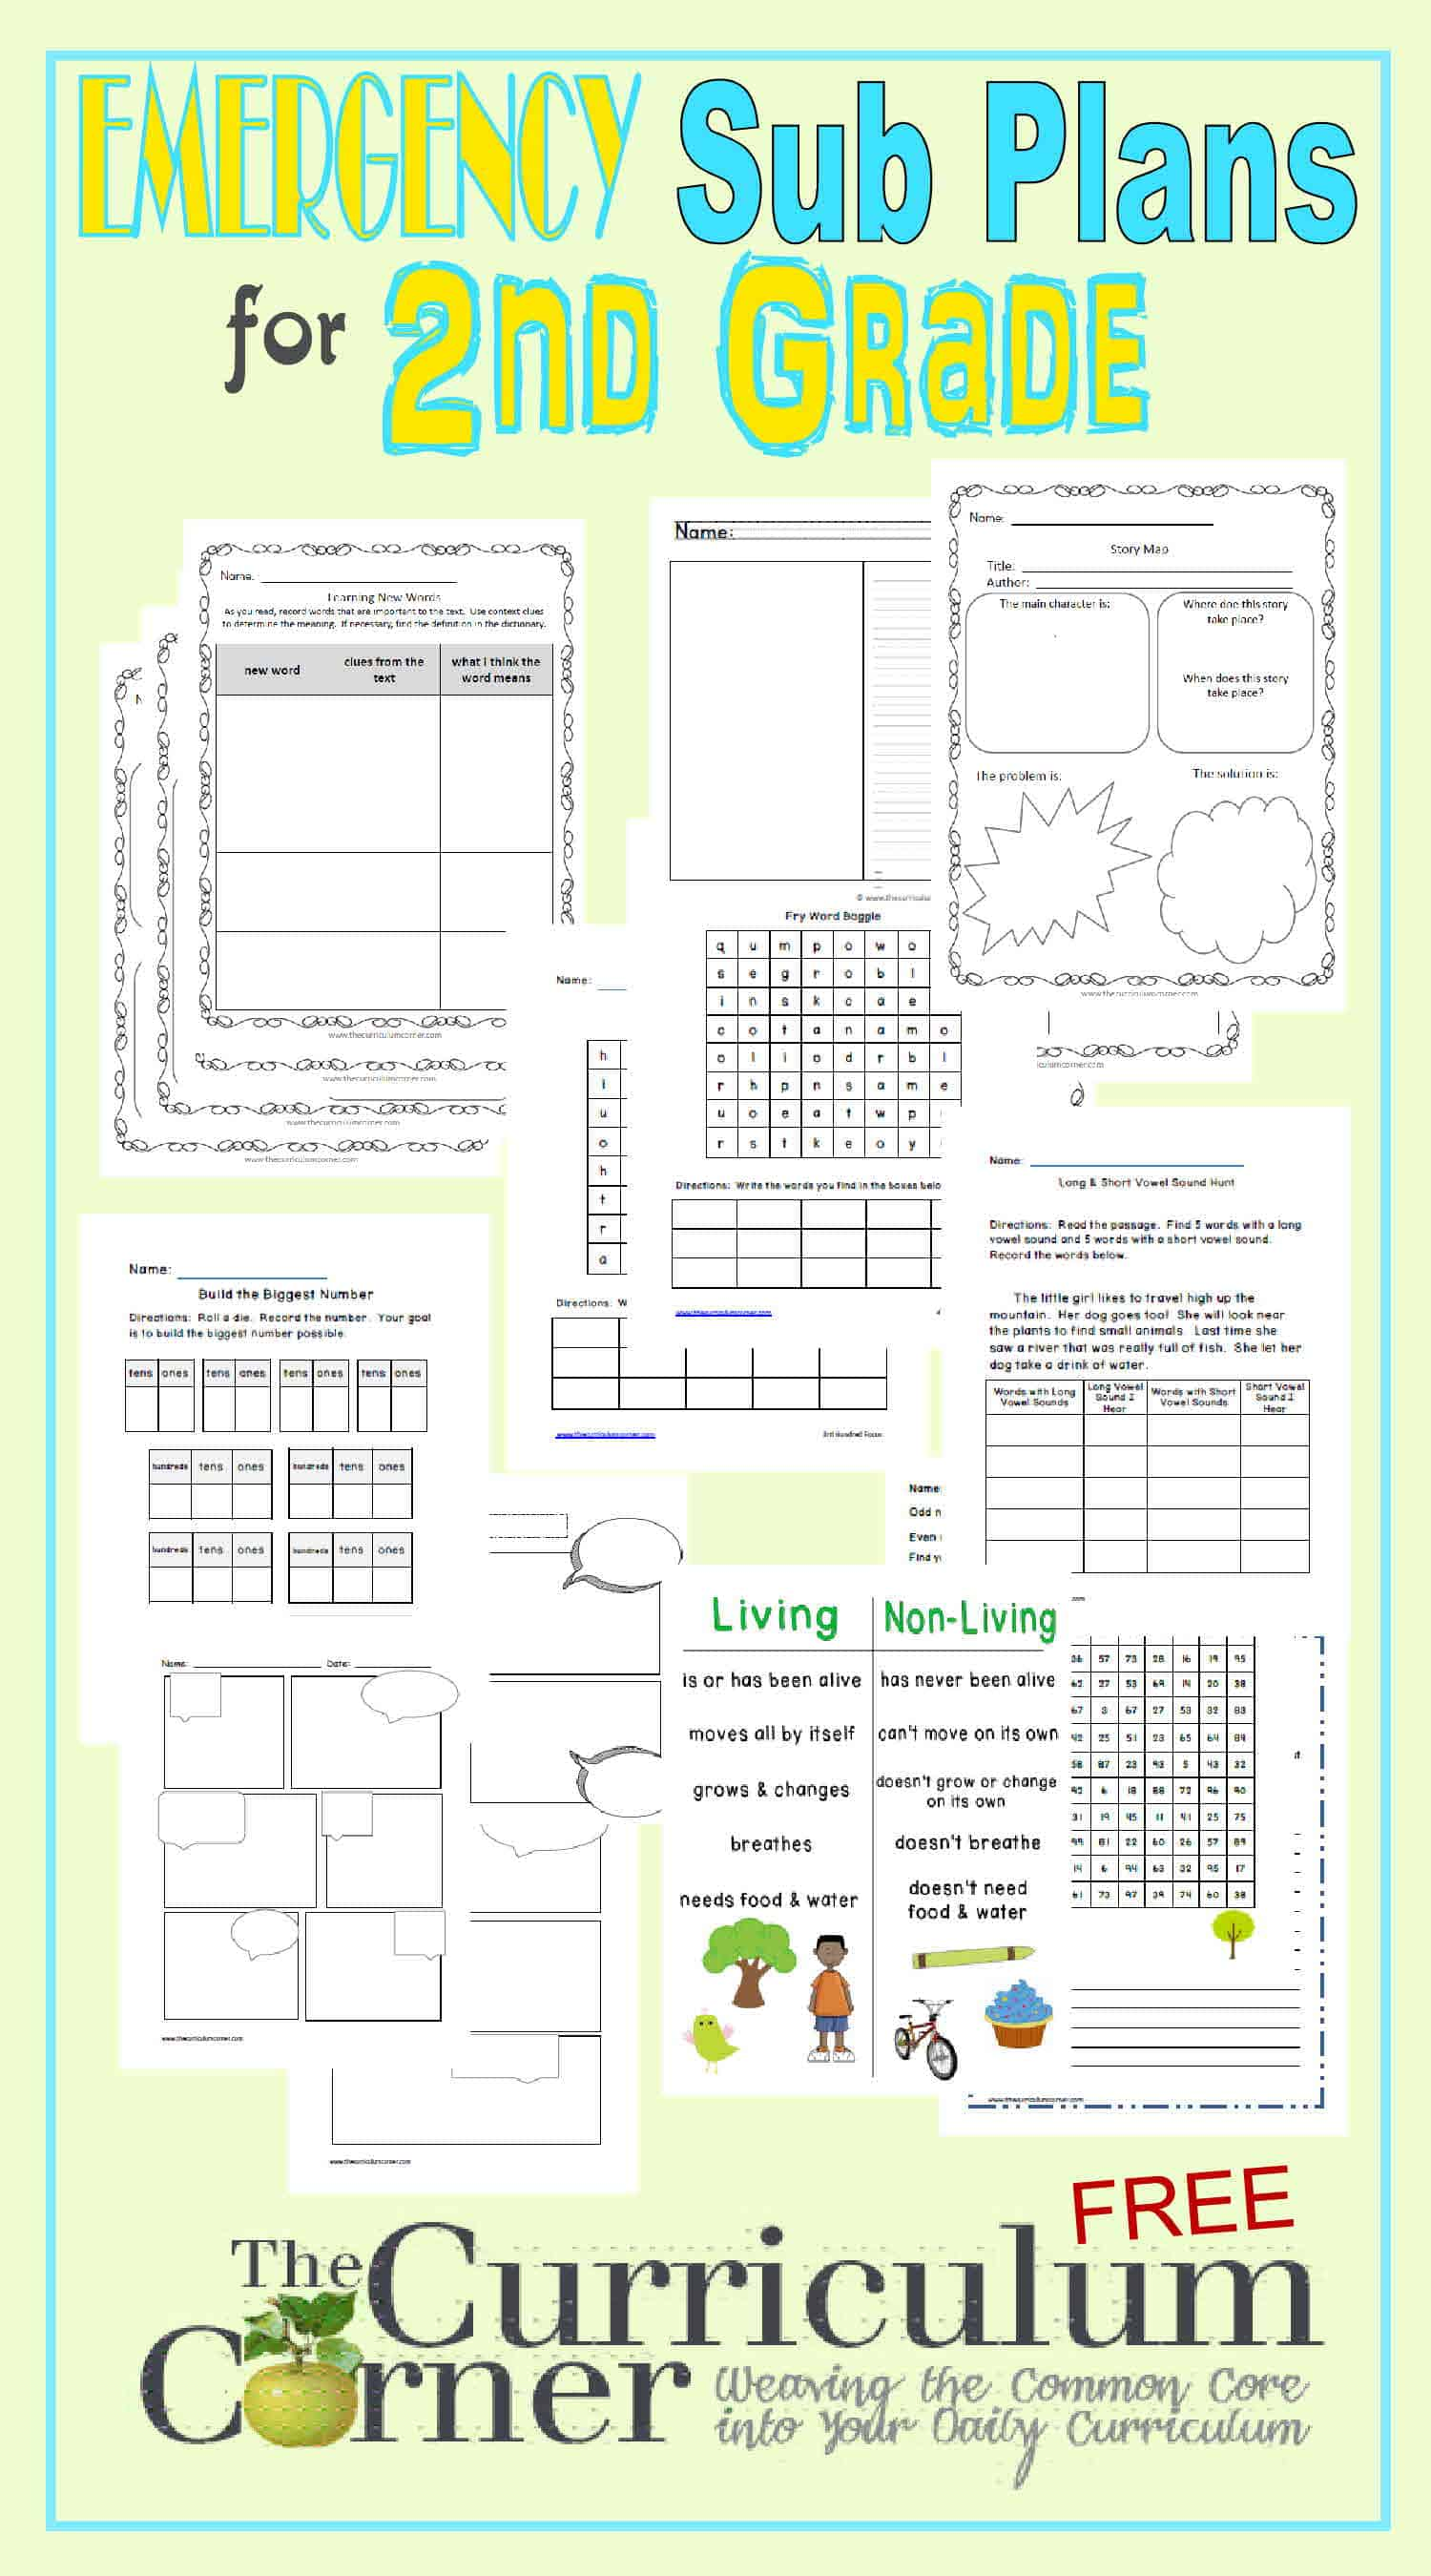 small resolution of 2nd Grade Emergency Sub Plans - The Curriculum Corner 123